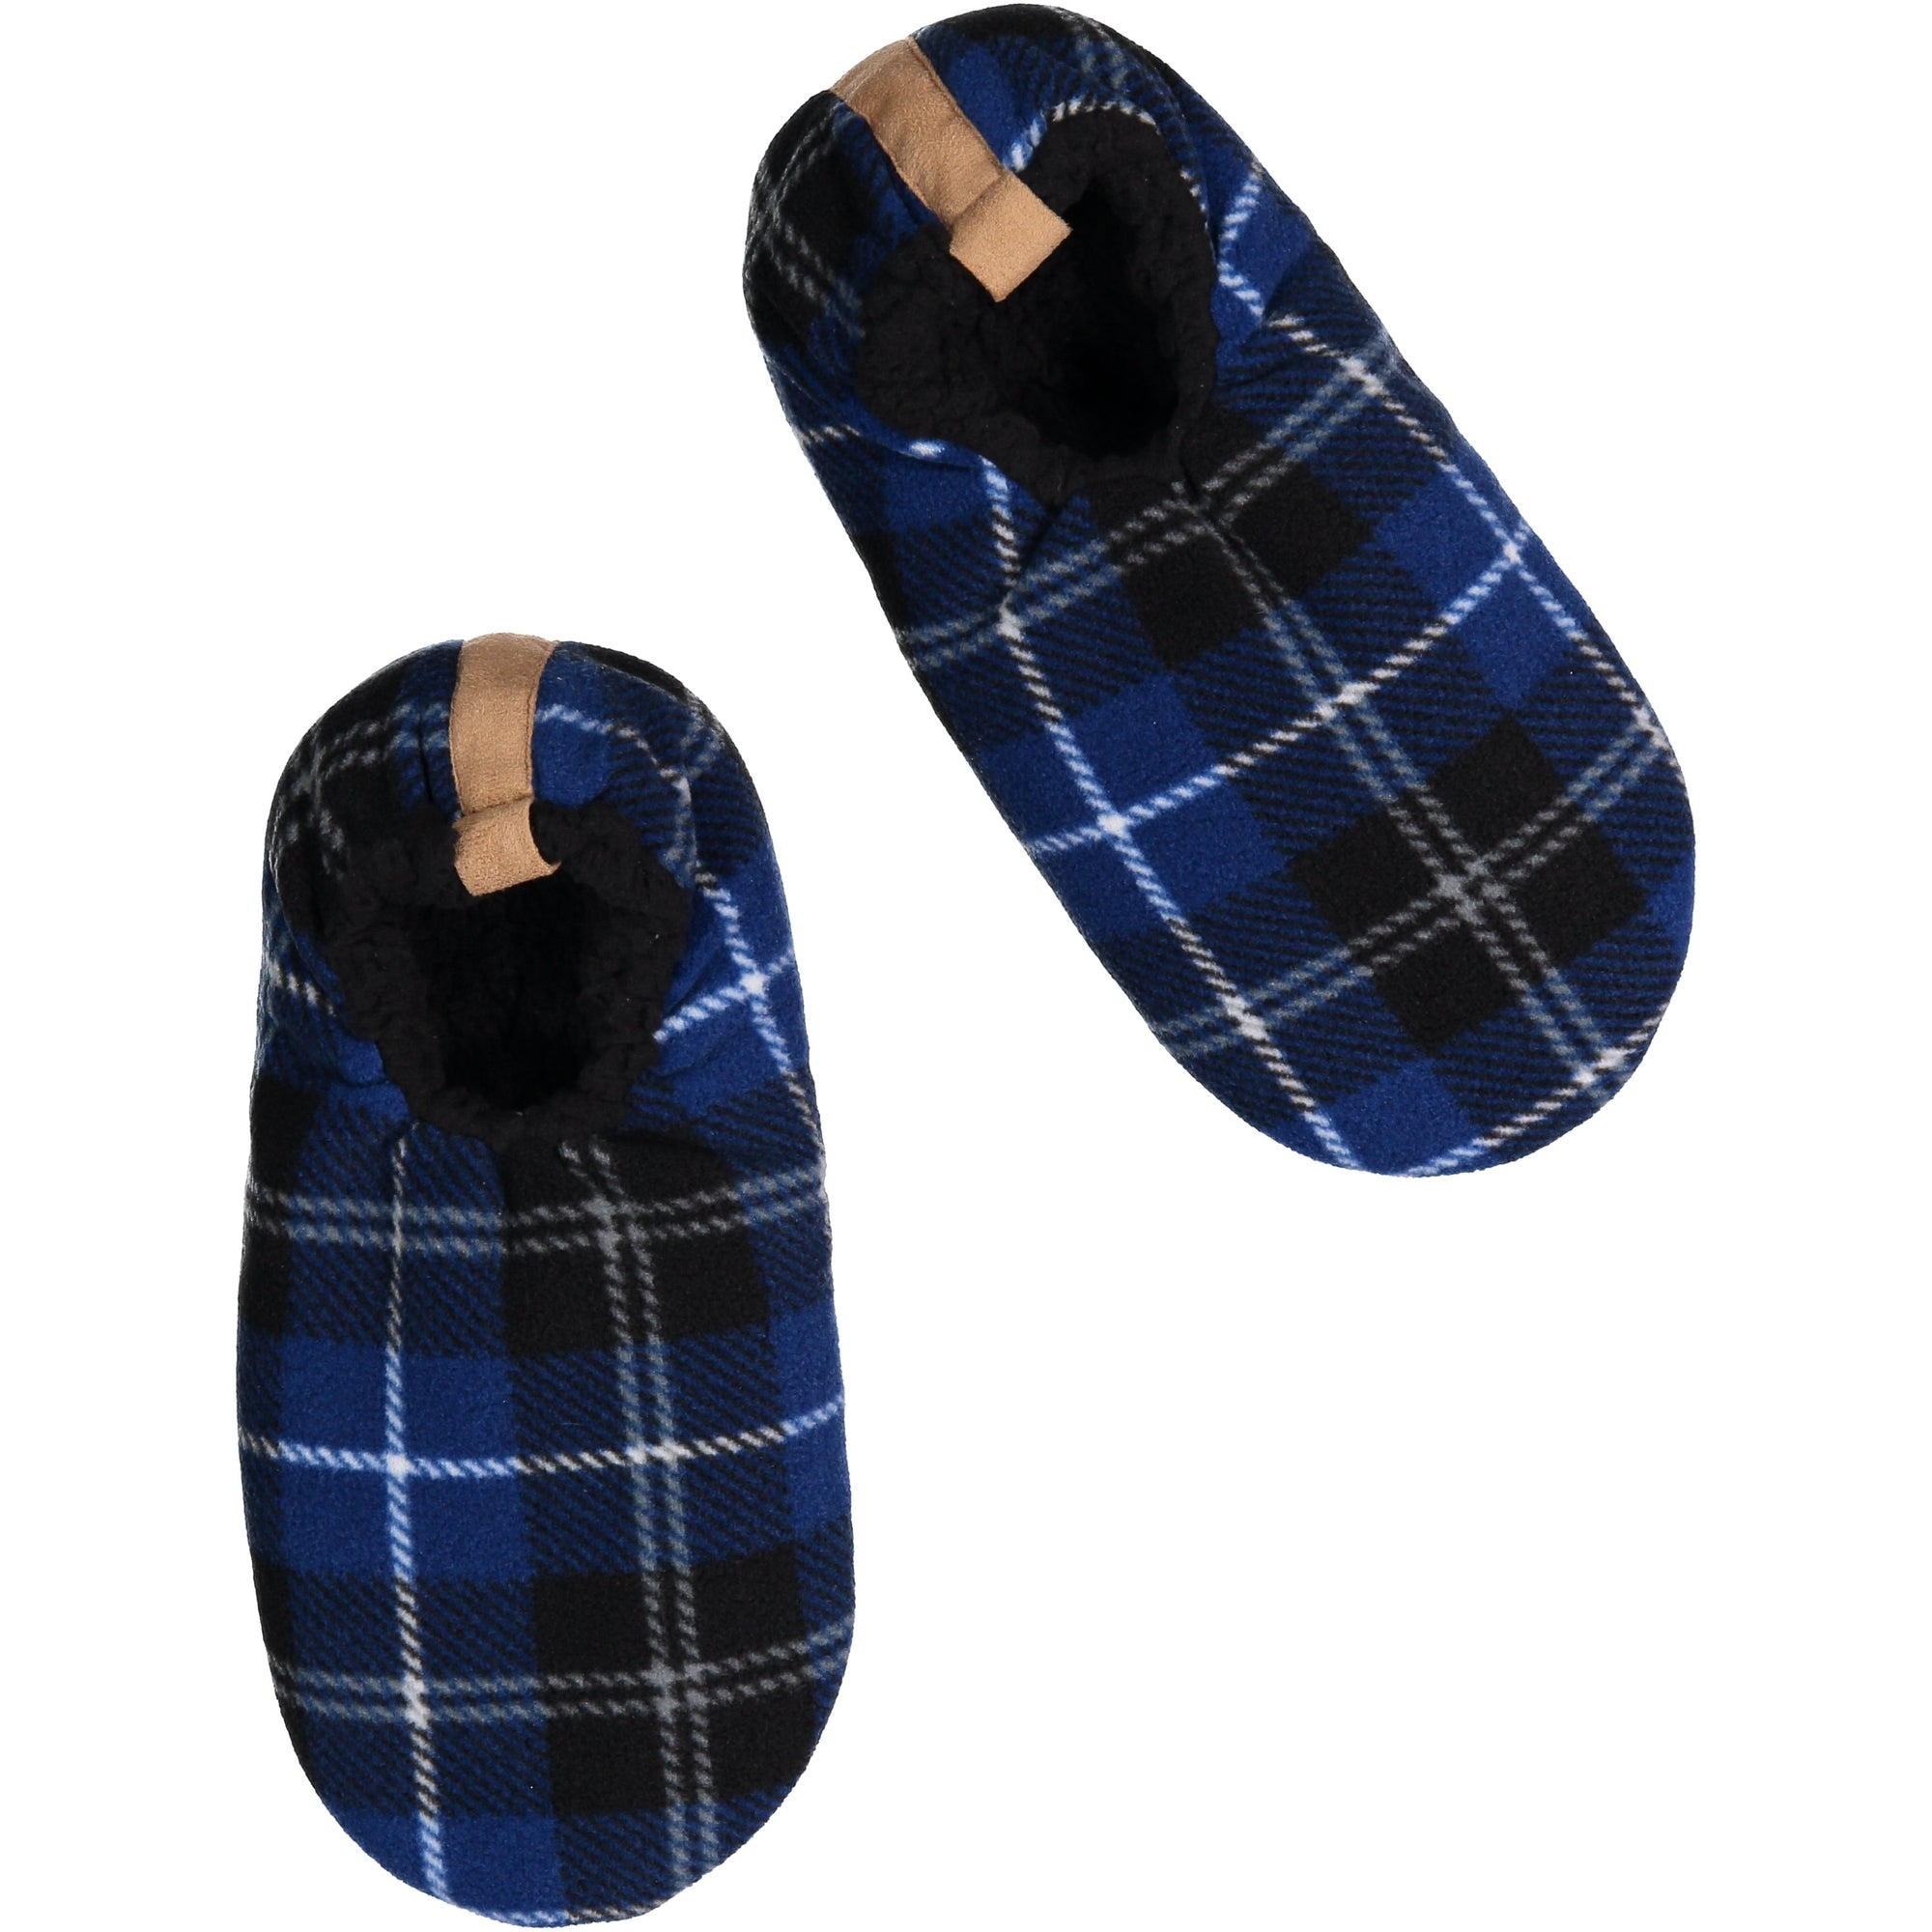 Men's Plaid Slipper Socks